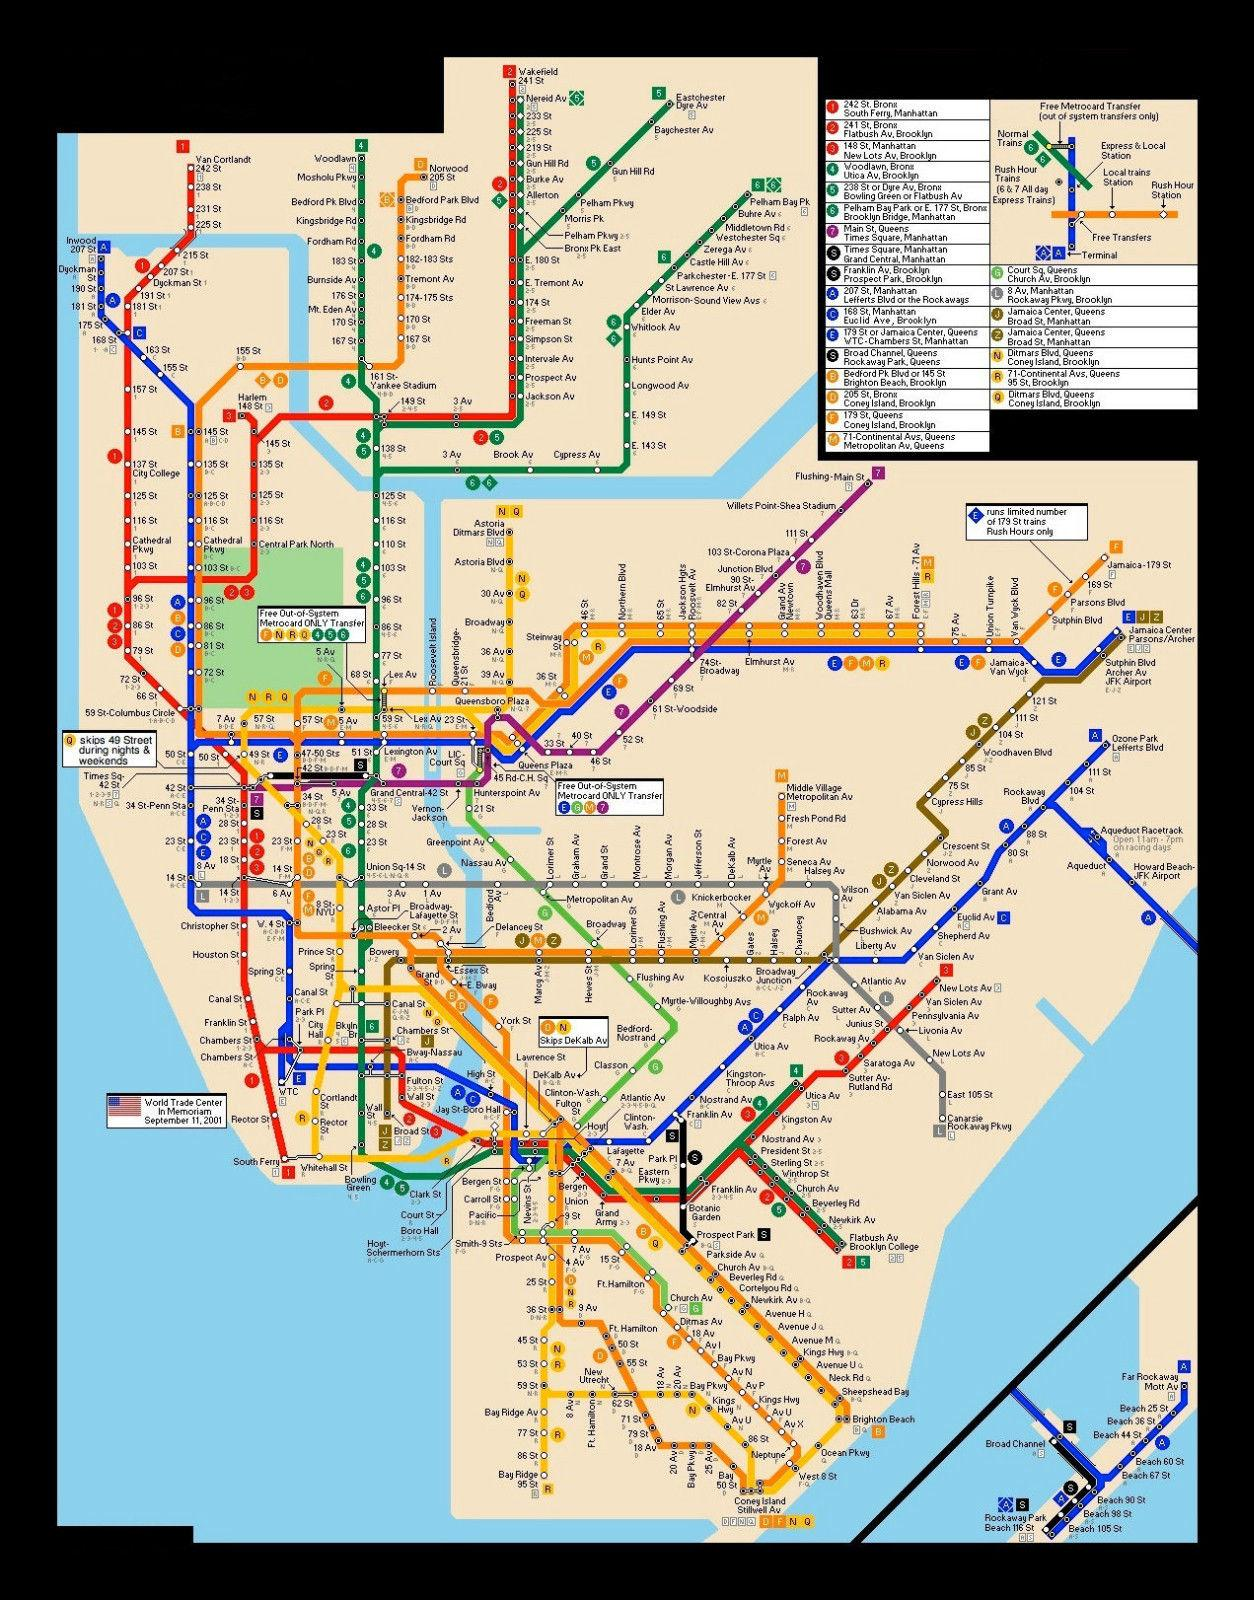 New York Subway Map To Print.New York City Subway Map Art Silk Print Poster 24x36inch 60x90cm 089